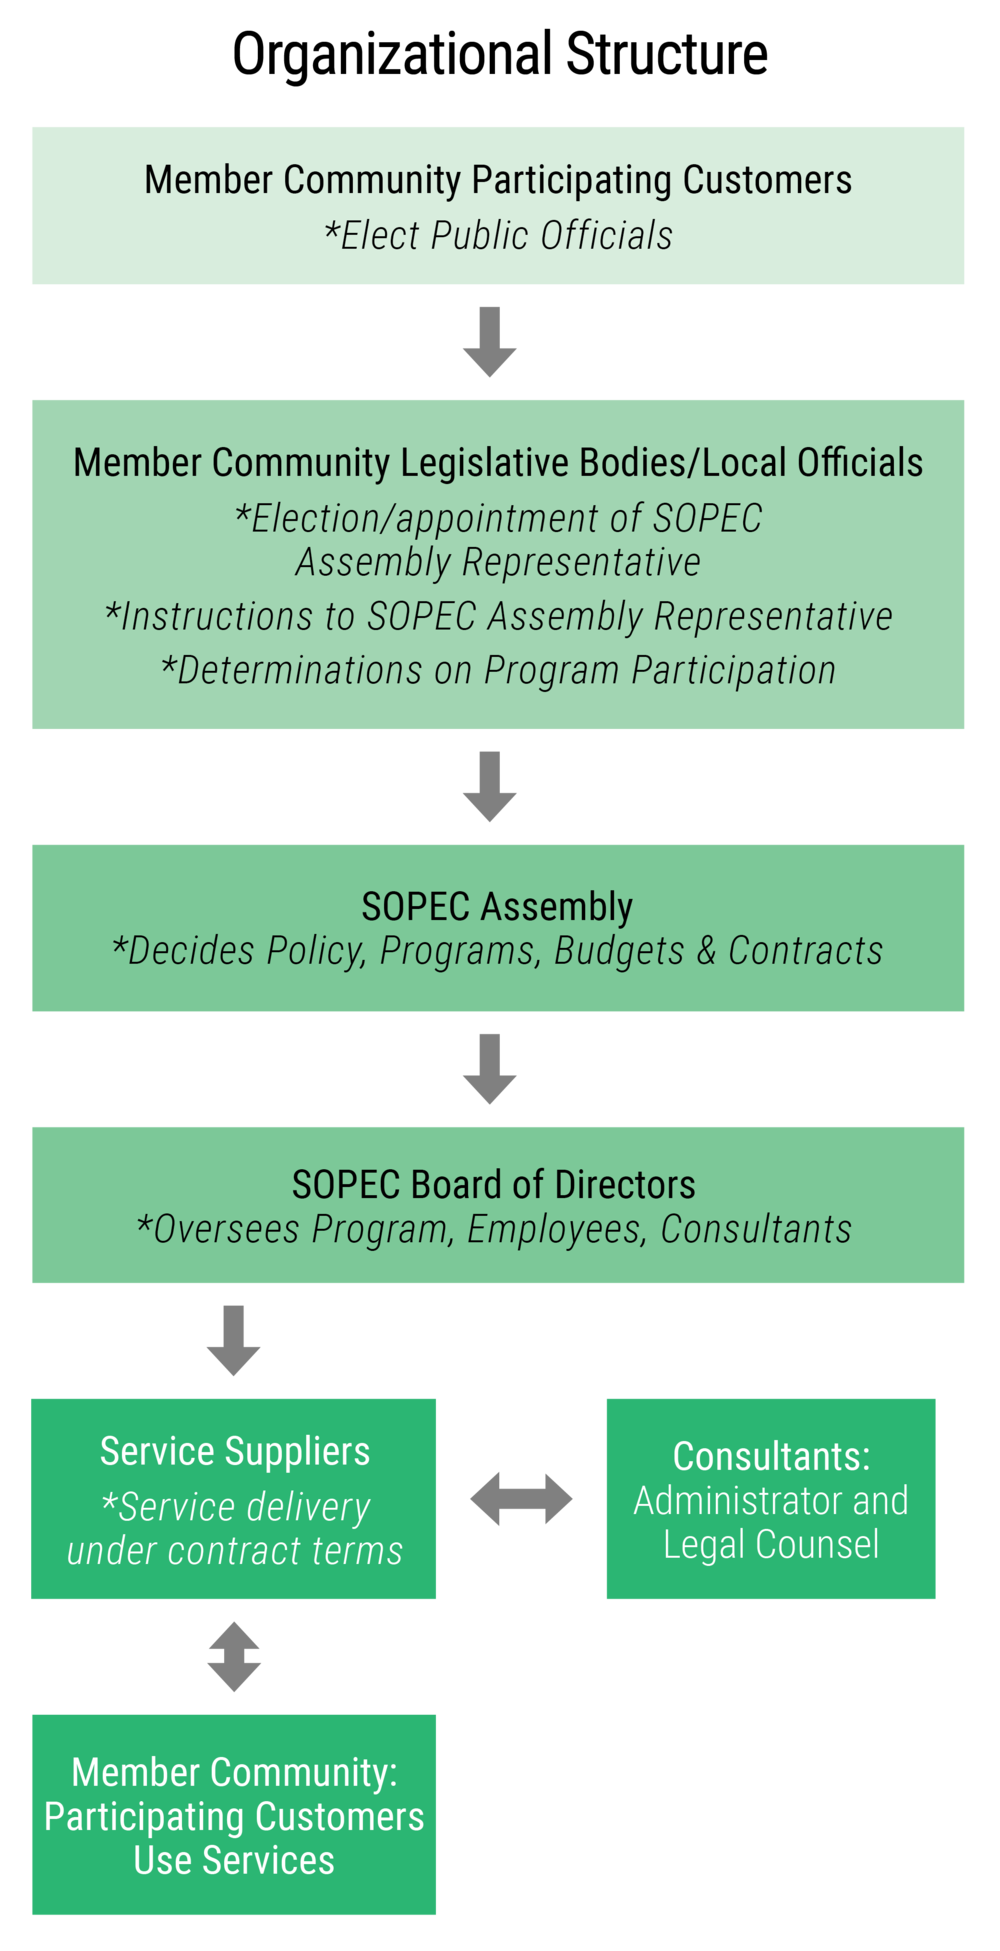 Organizational chart of the SOPEC Council of Governments. The SOPEC General Assembly governs the budget, bylaws, and program rules, with one vote for each member community. The SOPEC General Assembly also elects from within themselves a Board of Directors to provide regular oversight of programs, employees, and consultants. Employees and consultants administer programs for customers in accordance with the budget, bylaws, and program rules established by the SOPEC General Assembly, and within the laws of the State of Ohio.